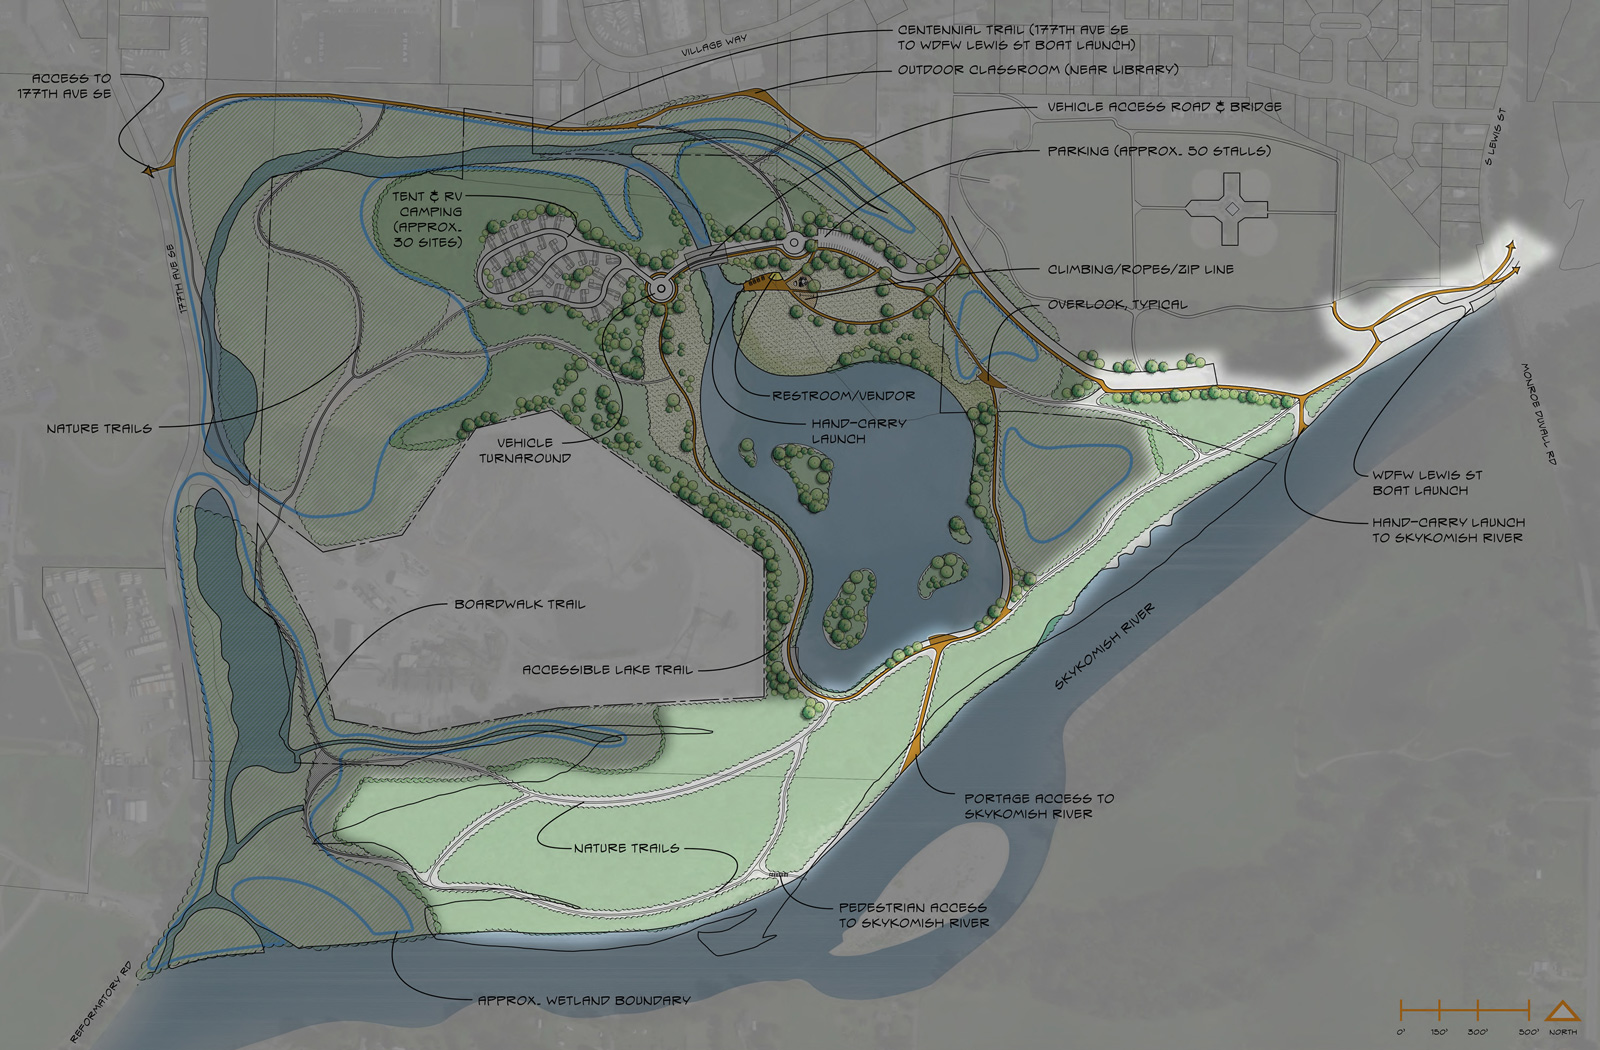 "Let's move to the <strong>river-shore area</strong> of the Cadman Site. The community enthusiastically supports river access, and this area offers abundant river frontage. The types of things proposed here will be designed to be either resilient or easily replaceable, anticipating frequent flooding. The plan includes trail access to the river, trails along the length of the river, launches for hand-carry watercraft, a portage between the pond and river, and strategies to enhance the shoreline environment. <a href=""https://drive.google.com/file/d/0BxrVDQaWMHGdQ2s1c0ljalJtZDg/view?usp=sharing"" rel=""nofollow"" target=""_blank"">Click here </a>to see an enlarged view in a new window. <br><br>"